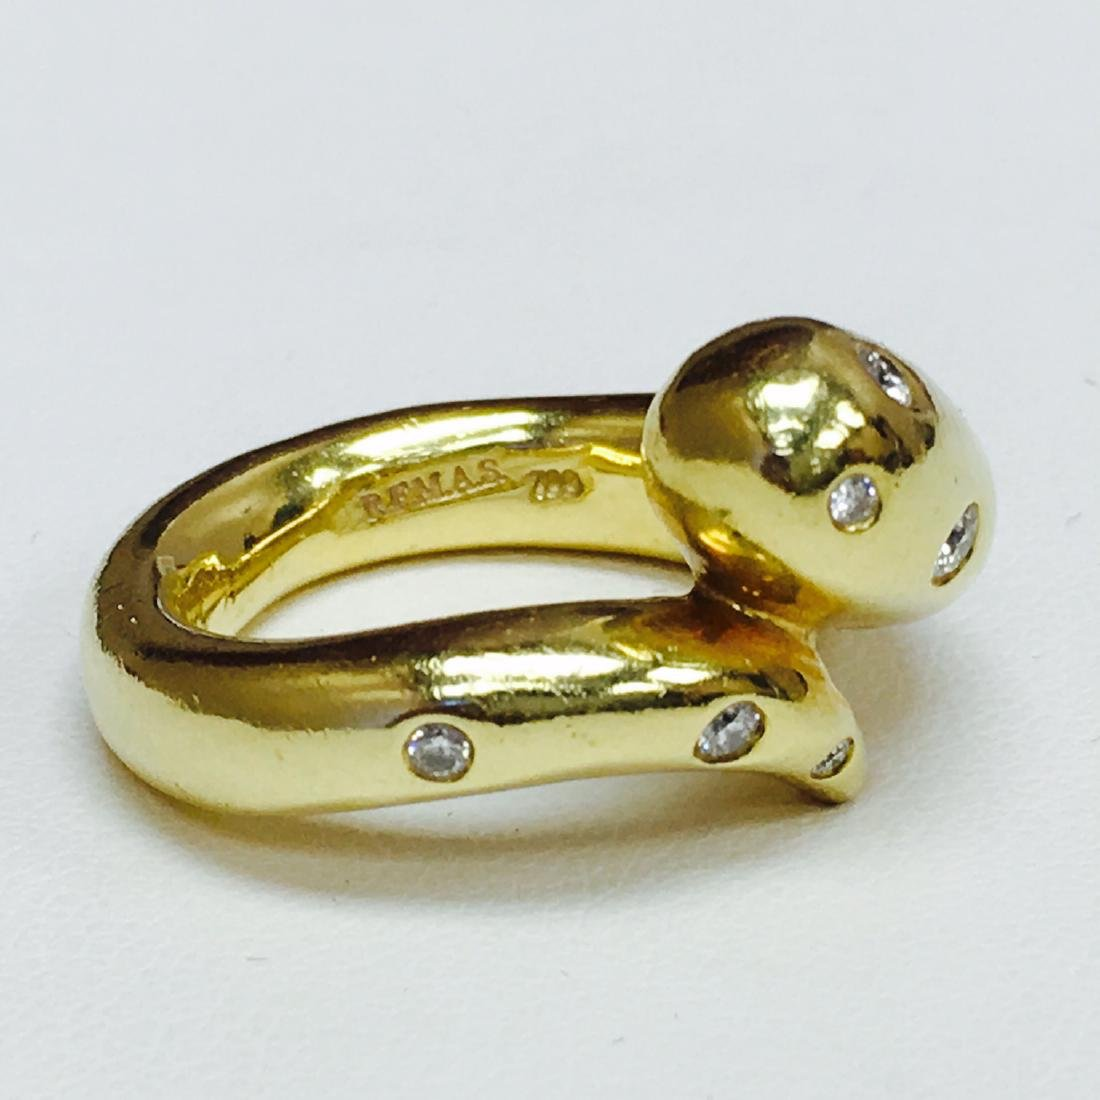 R.F.M.A.S 18k Yellow Gold and White Diamond Ring - 2